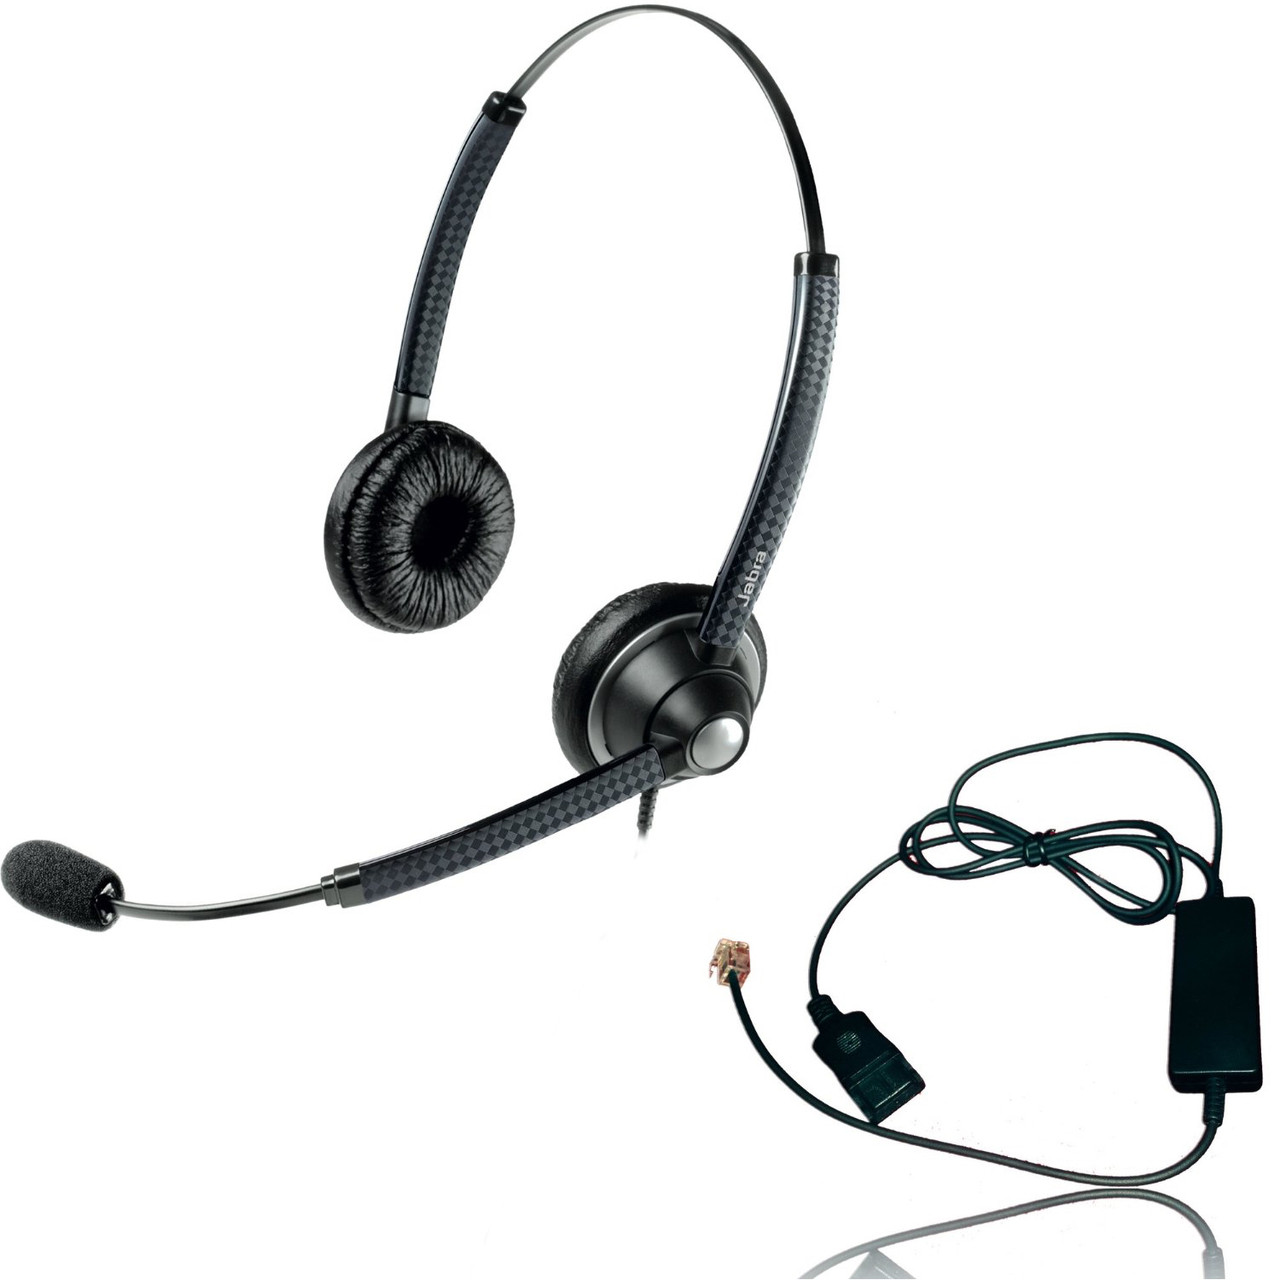 NEC compatible Headsets | Corded and Wireless headsets for NEC